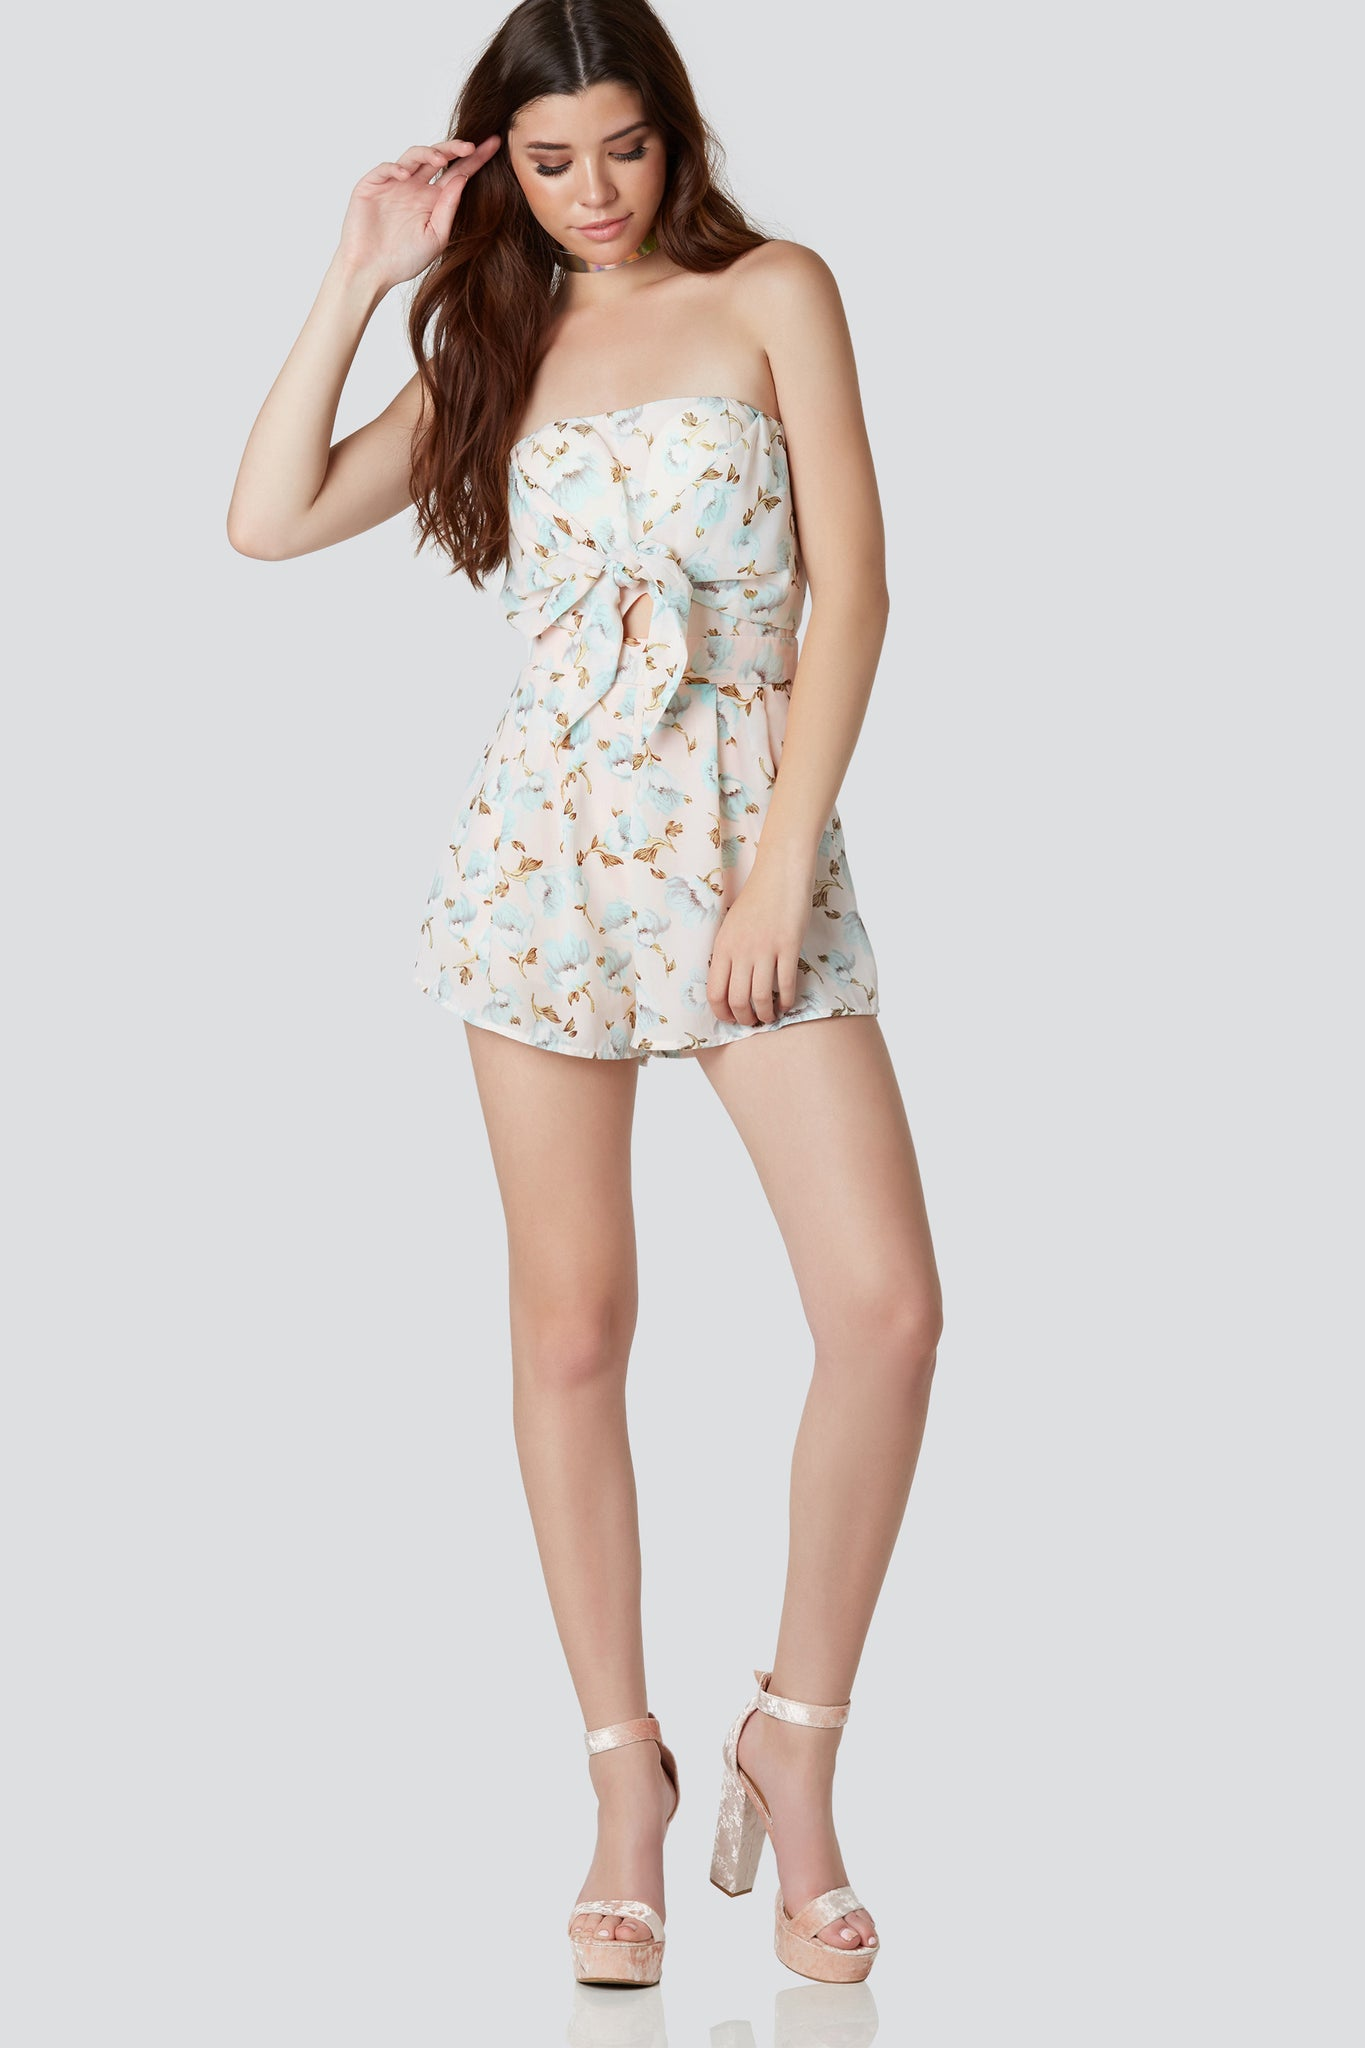 Strapless tube romper with flirty front tie detailing. Floral patterns throughout with small cut out at center and back zip closure.